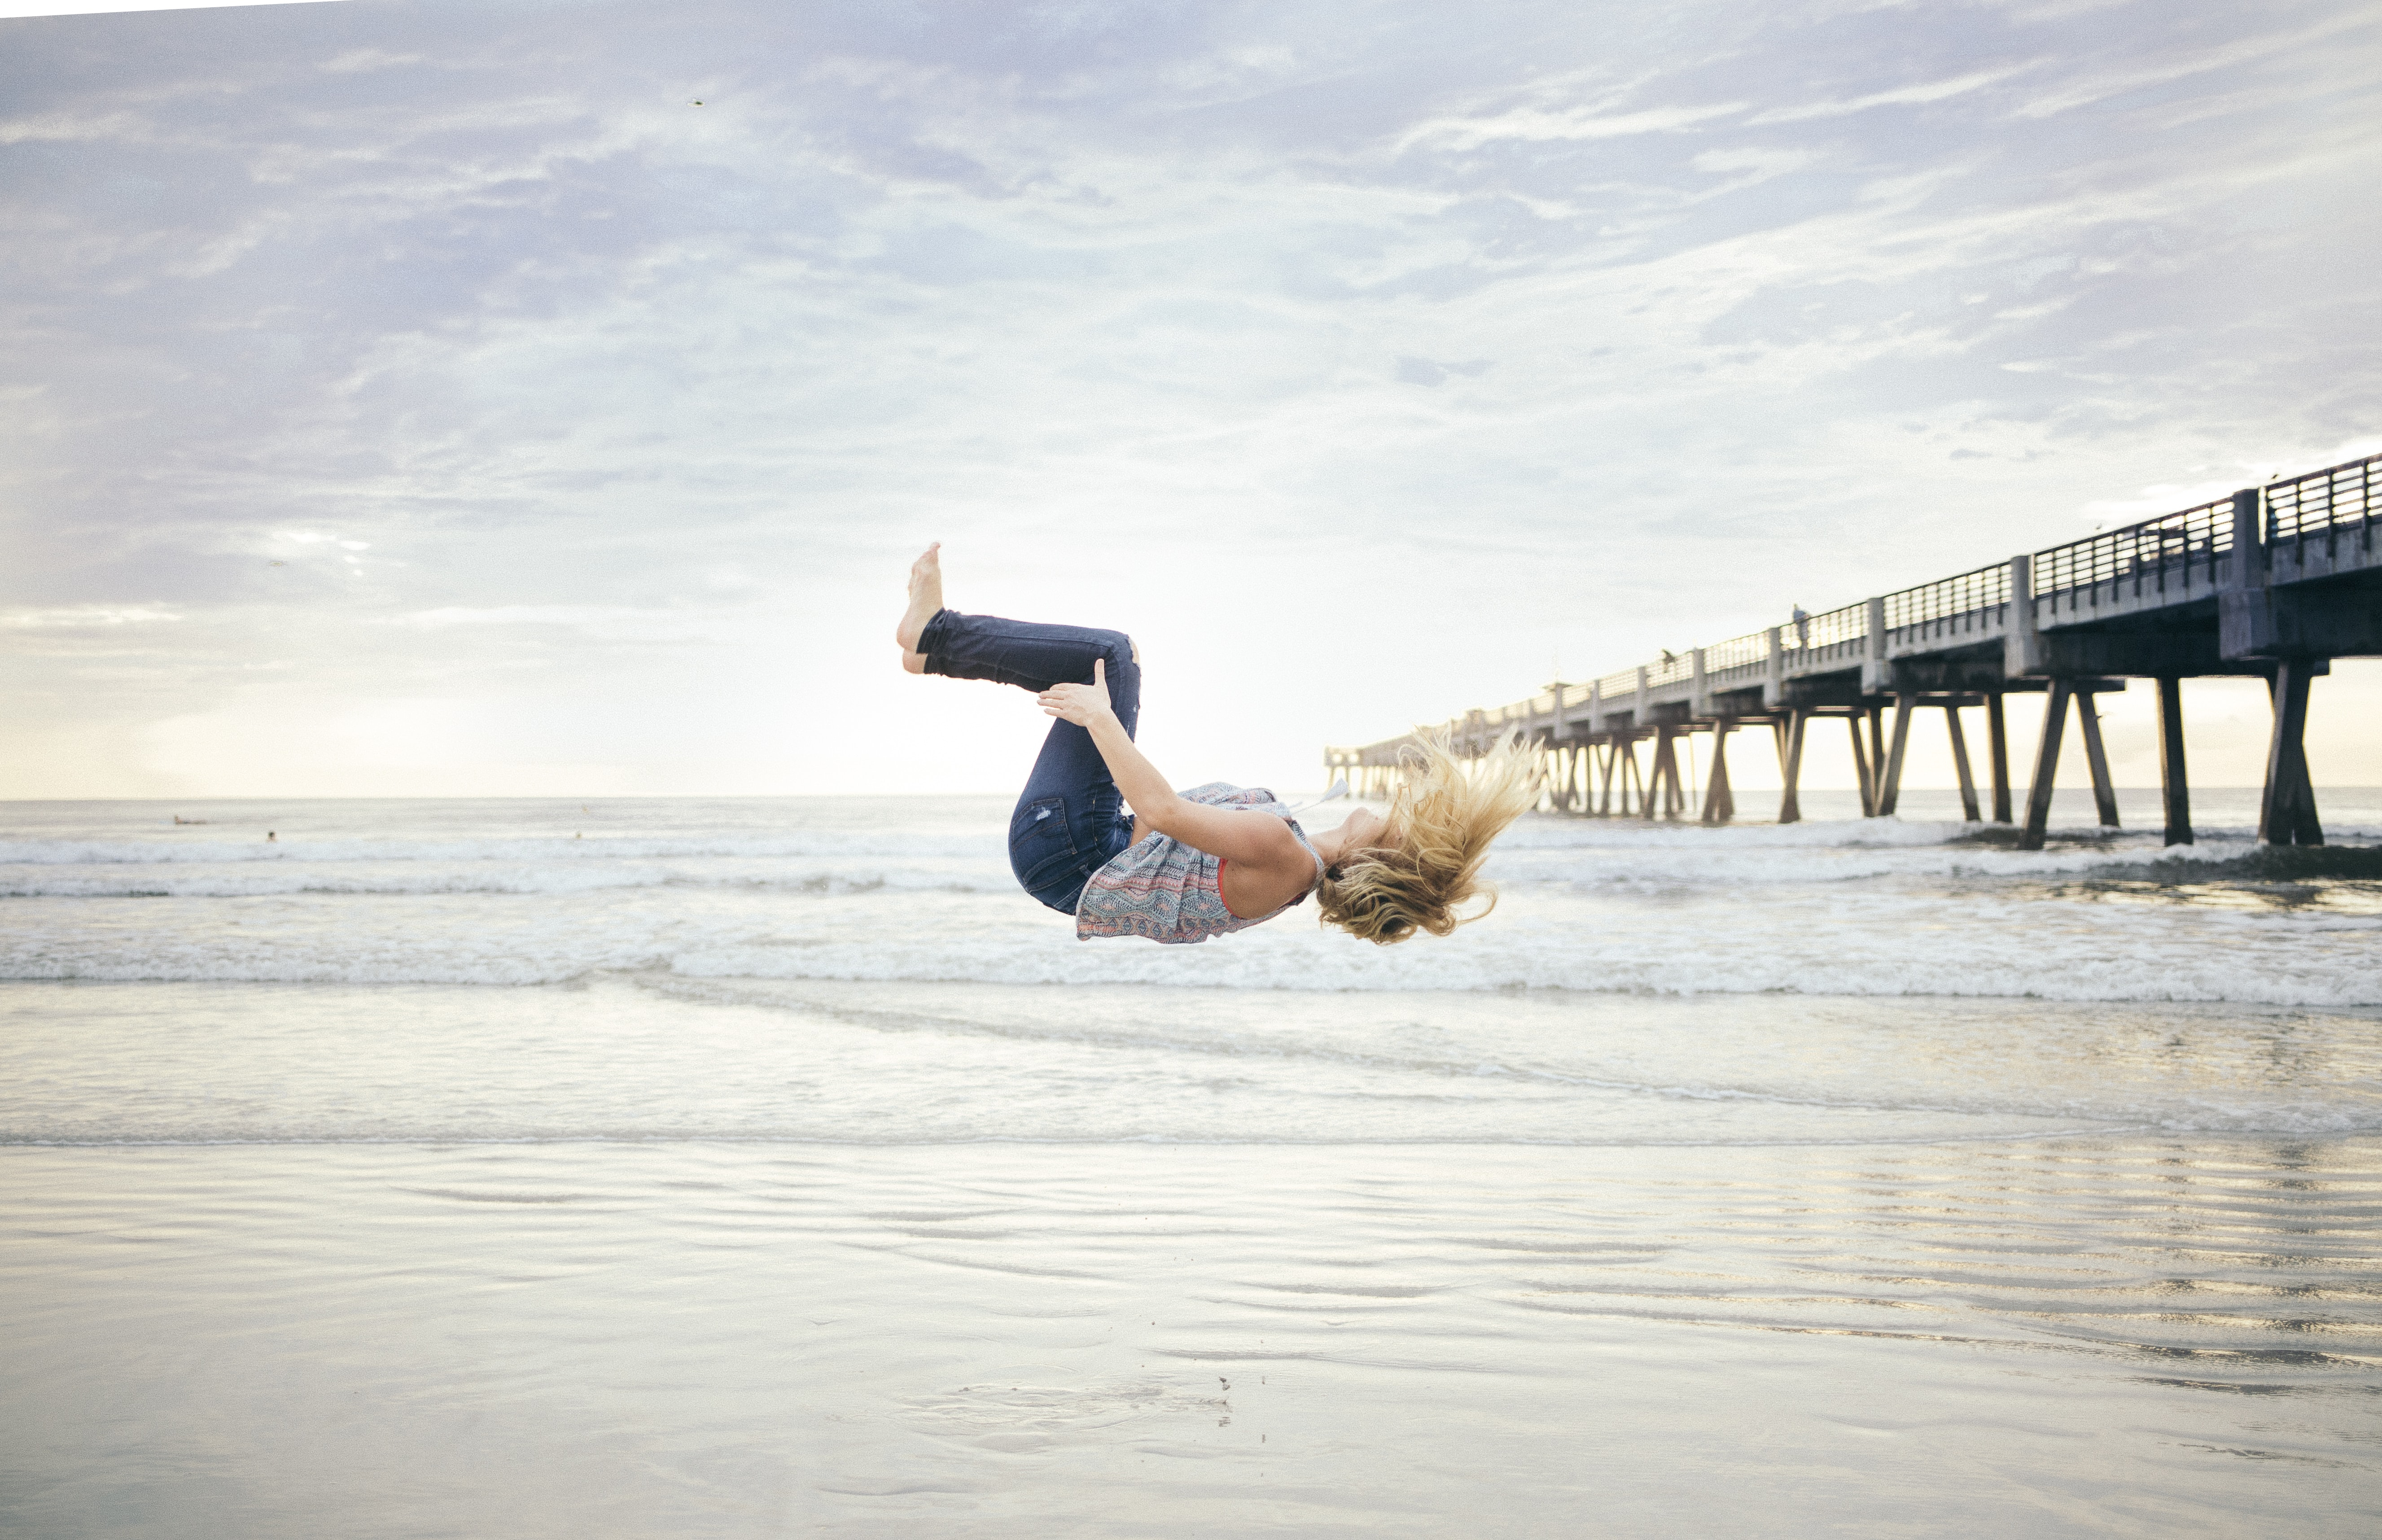 woman doing a back flip on beachshore